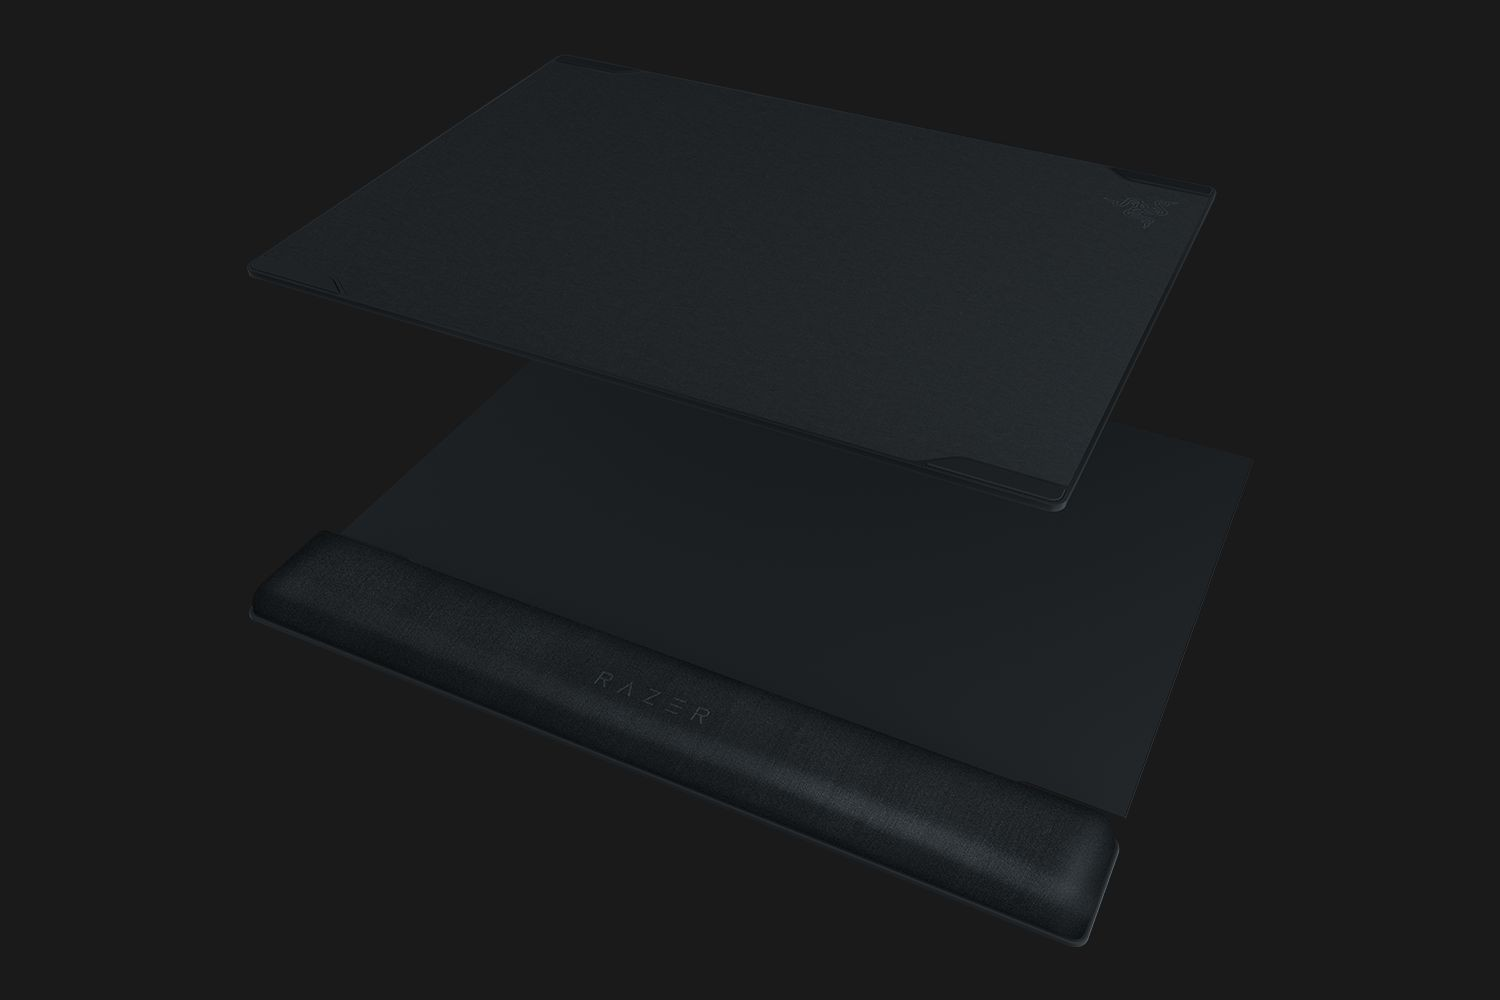 Razer Vespula V2 surface